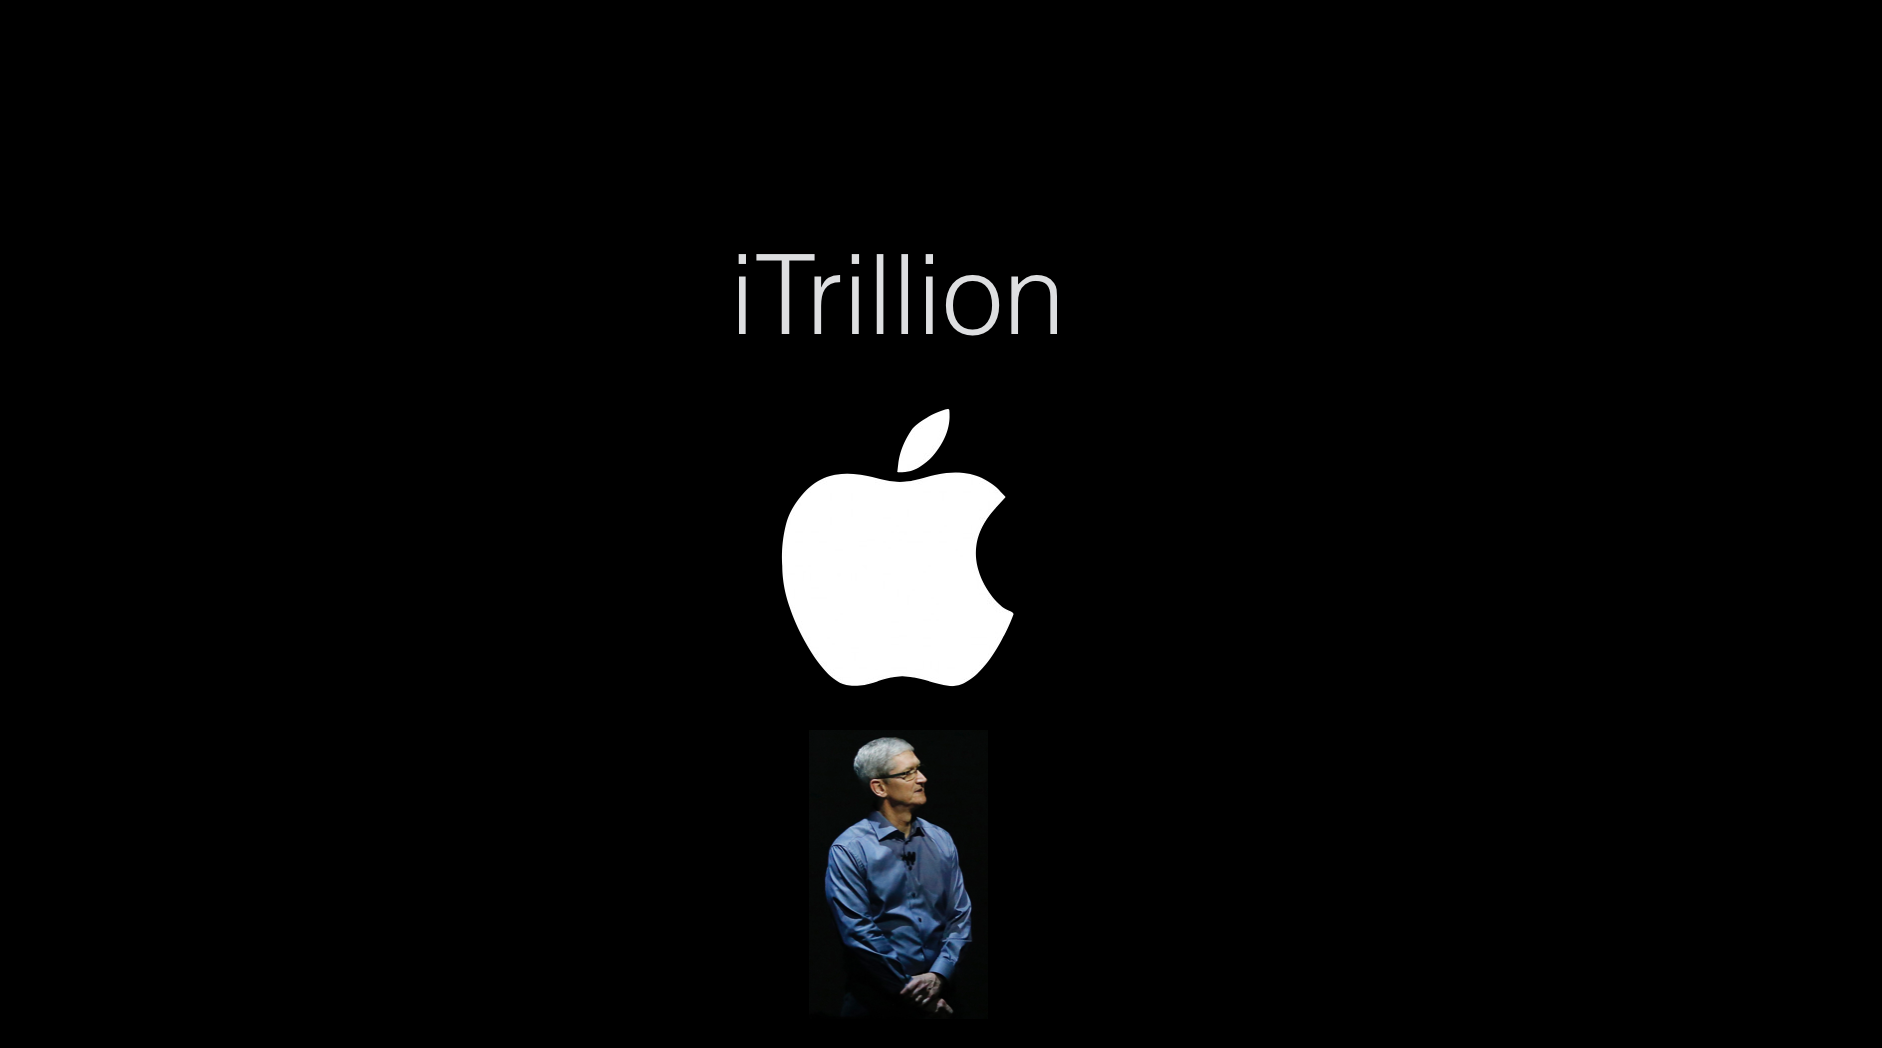 Apple at $1Trillion: The Missing Theory - Monday Note